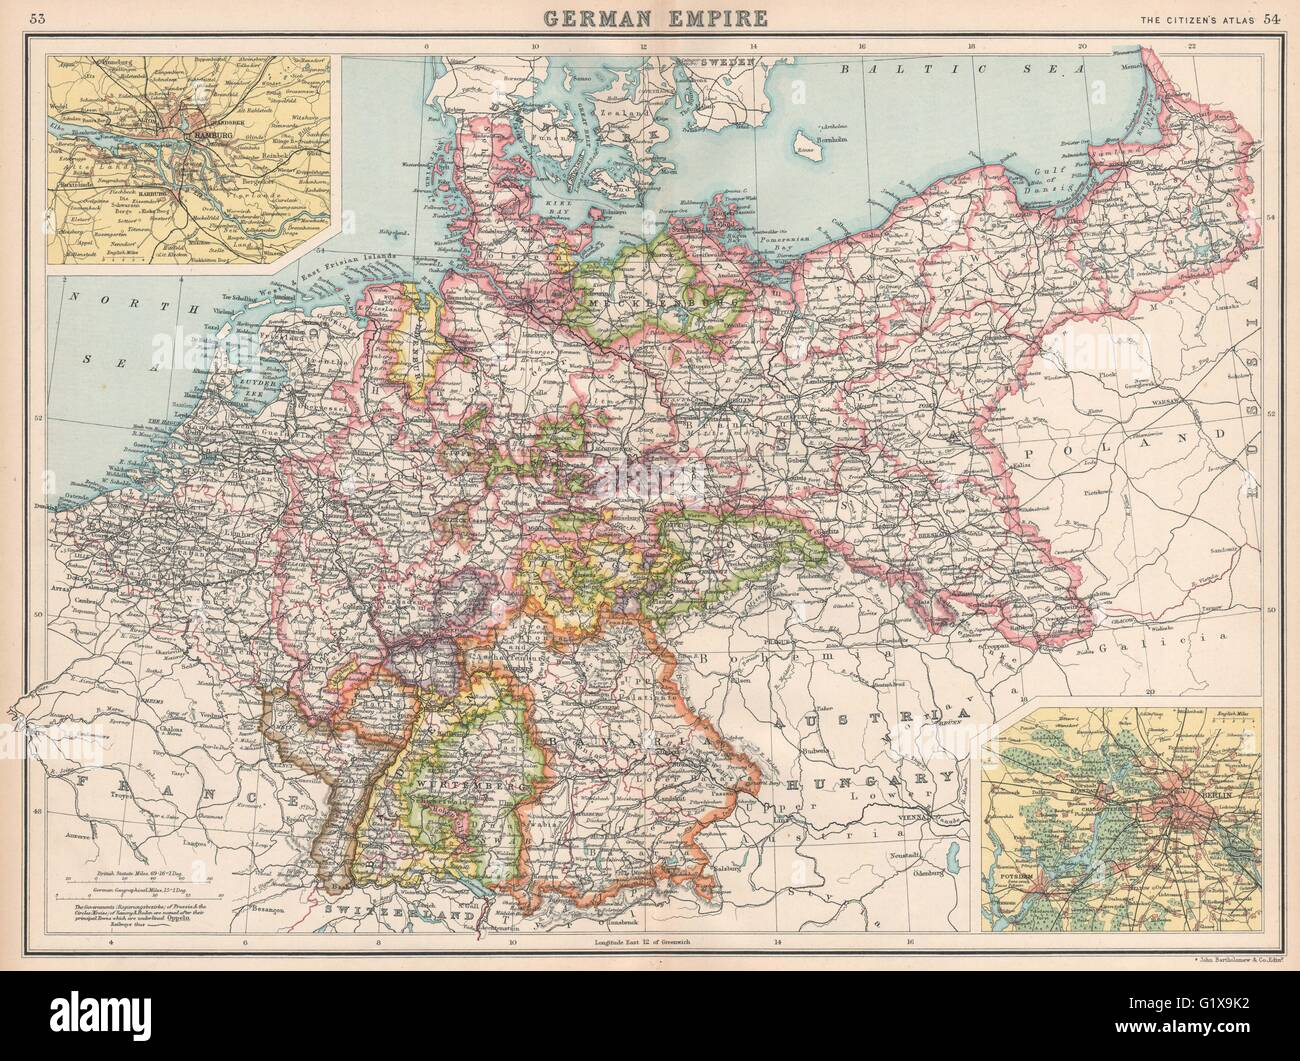 german empire states germany prussia hamburg berlin bartholomew 1912 map